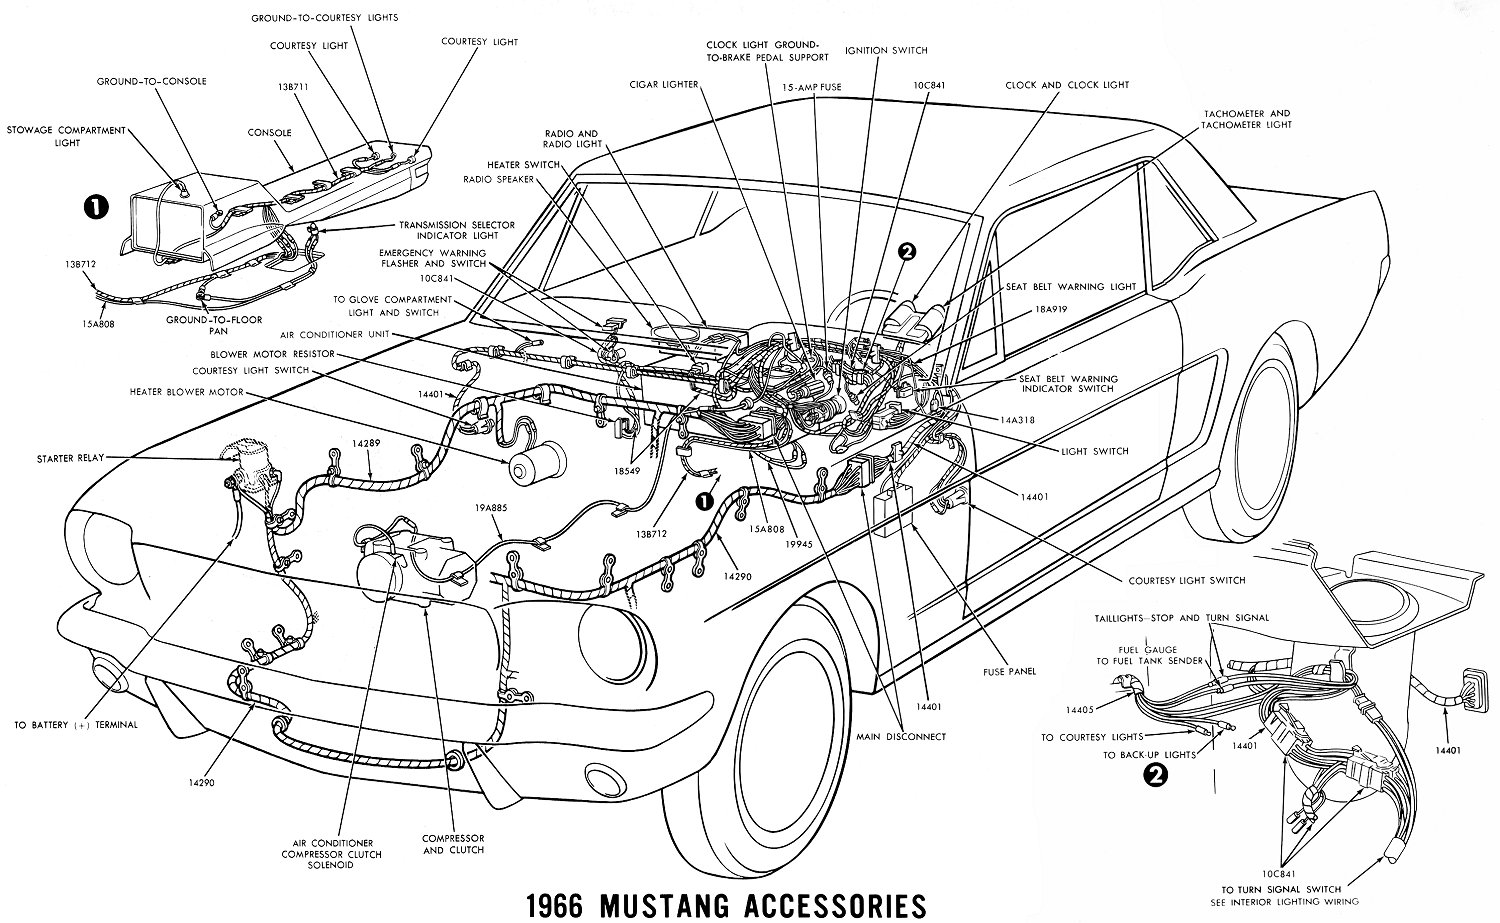 1966 mustang coupe wiring diagram 1966 mustang wiring diagrams - average joe restoration #9